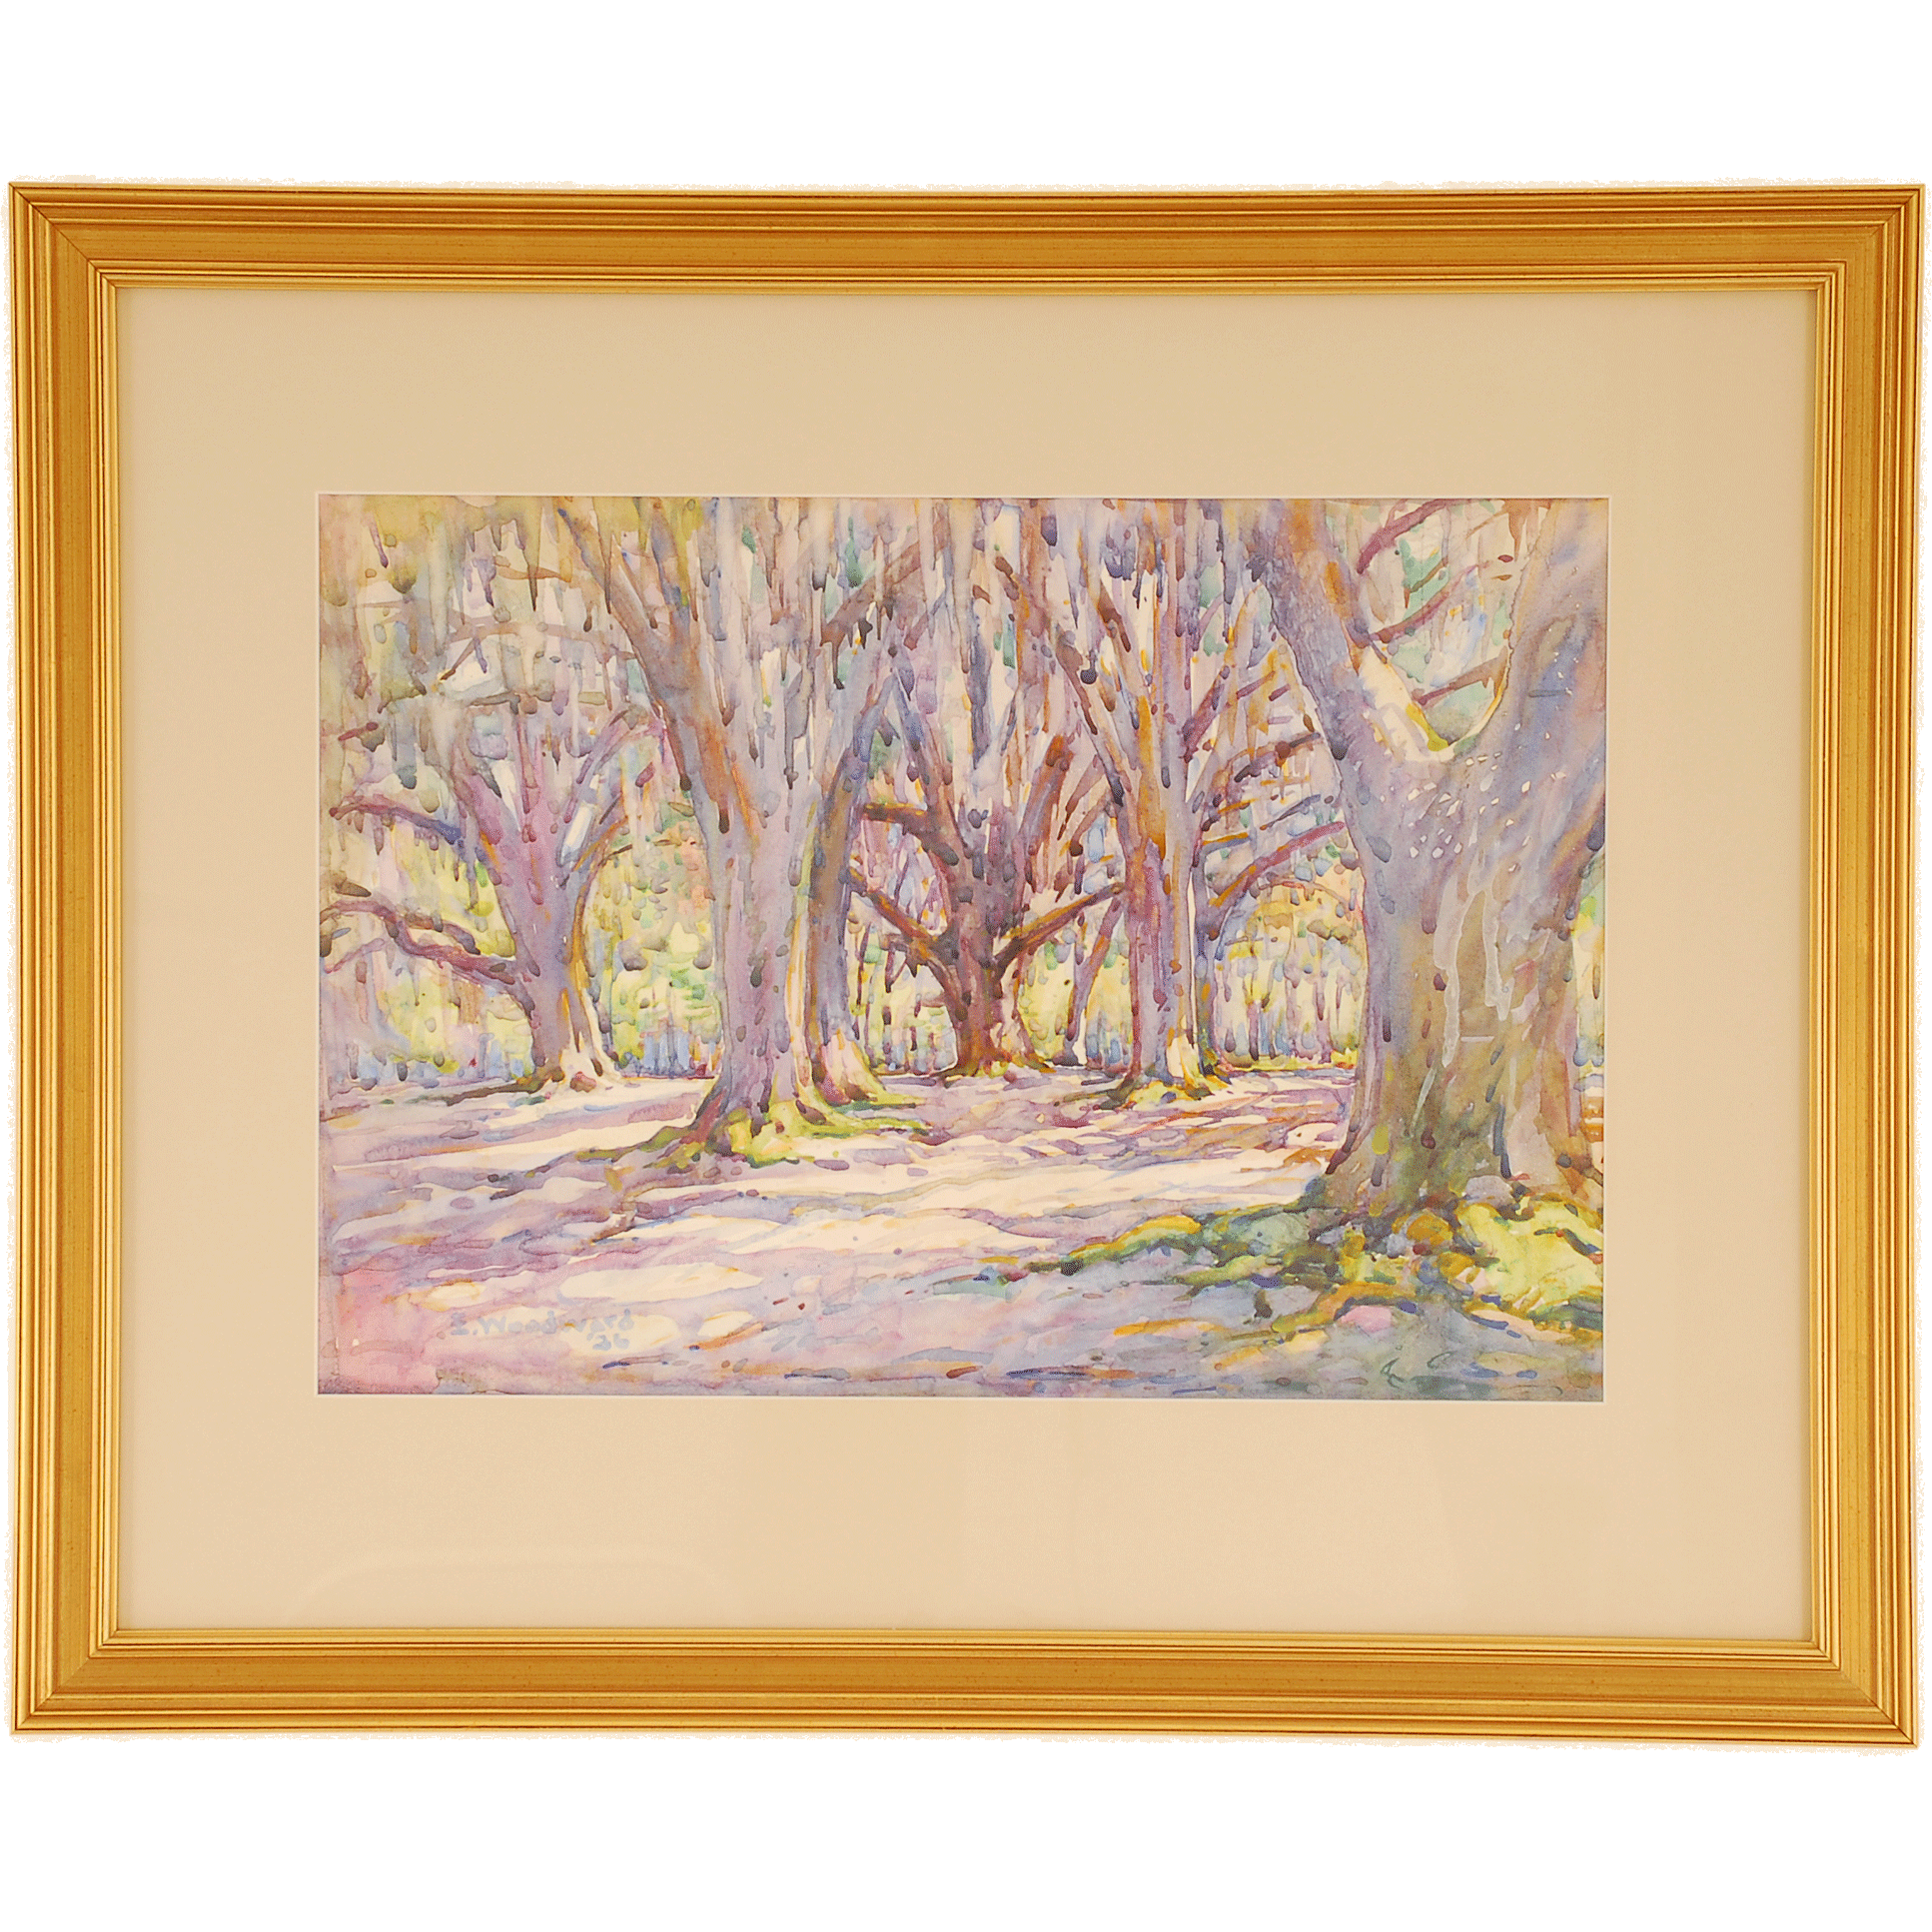 Watercolor of Wooded Landscape by Ellsworth Woodward